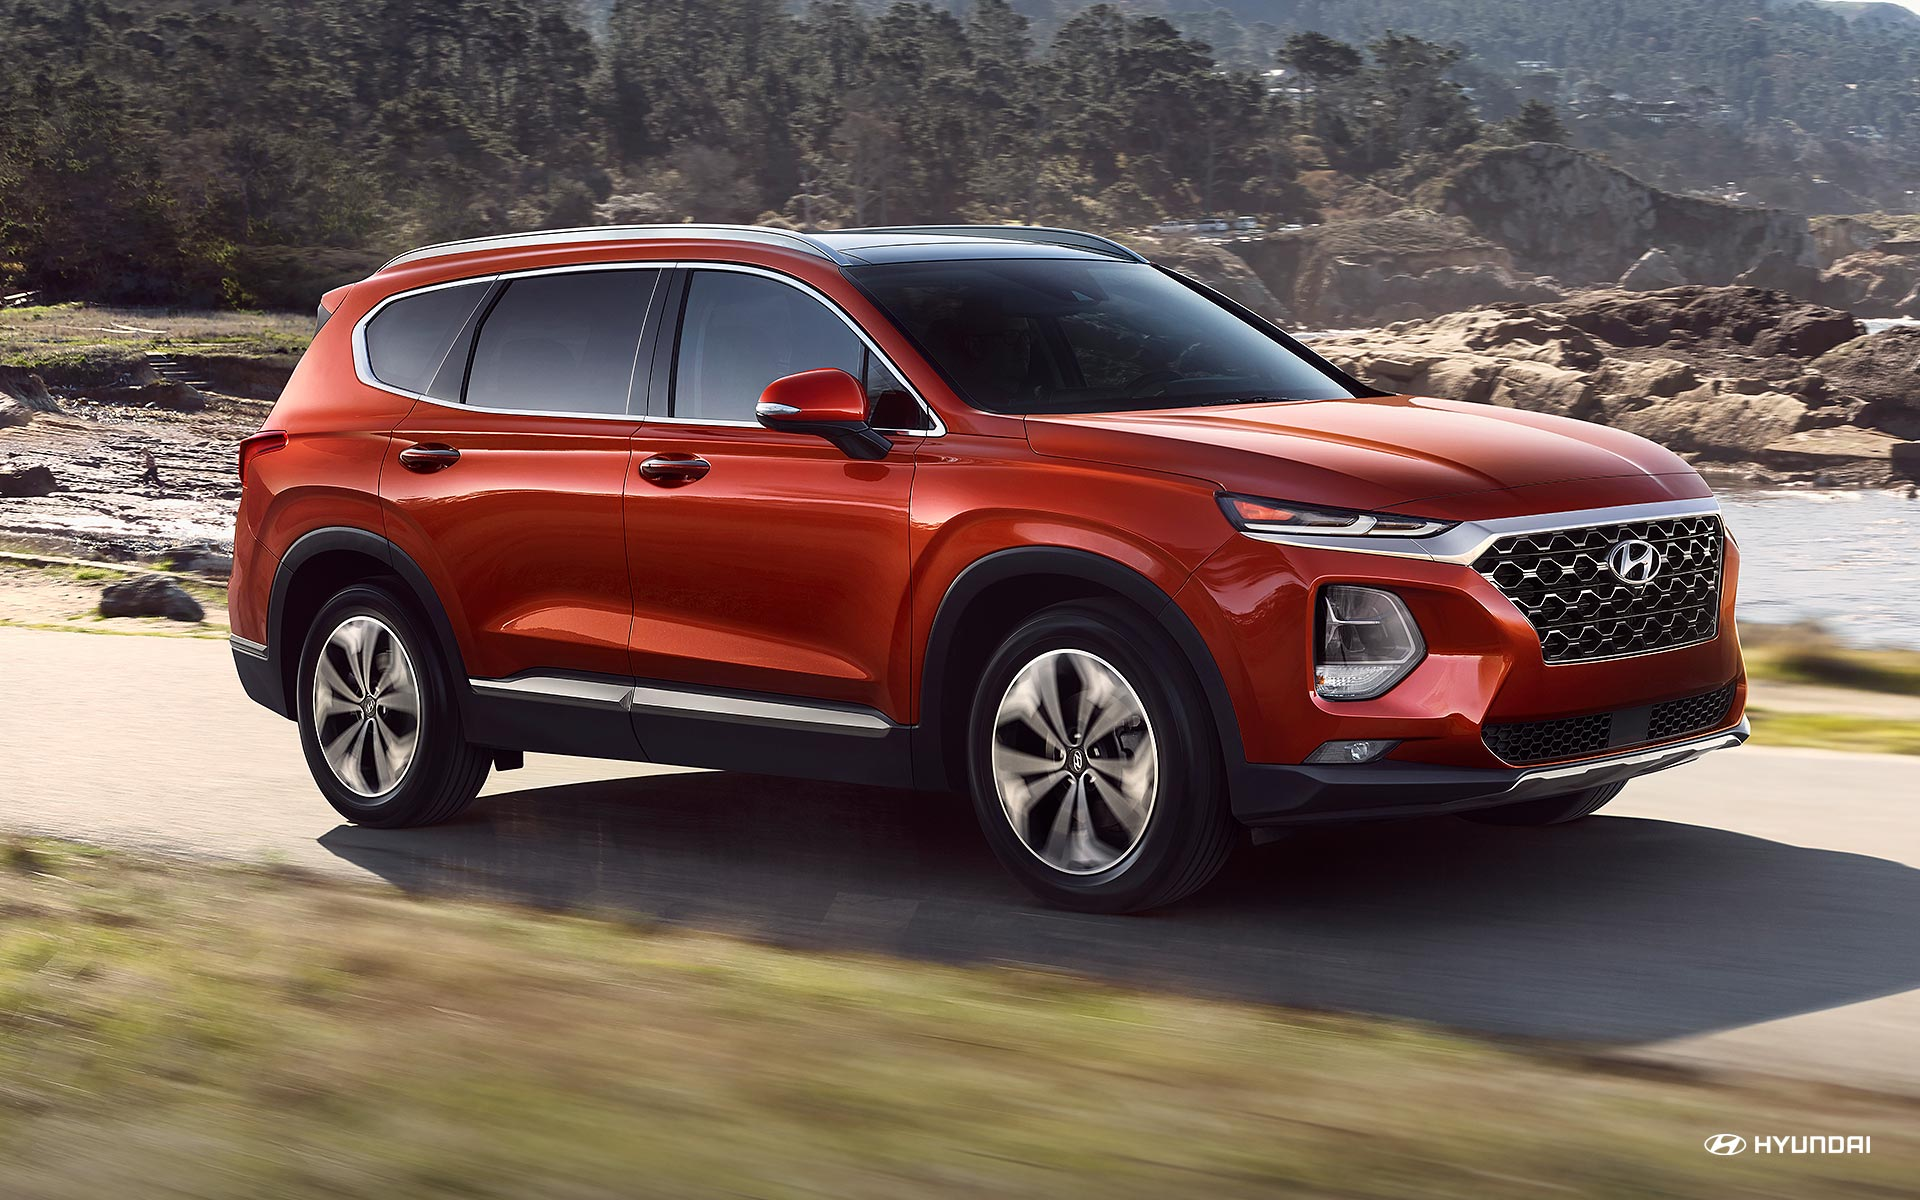 2020 Hyundai Santa Fe Safety